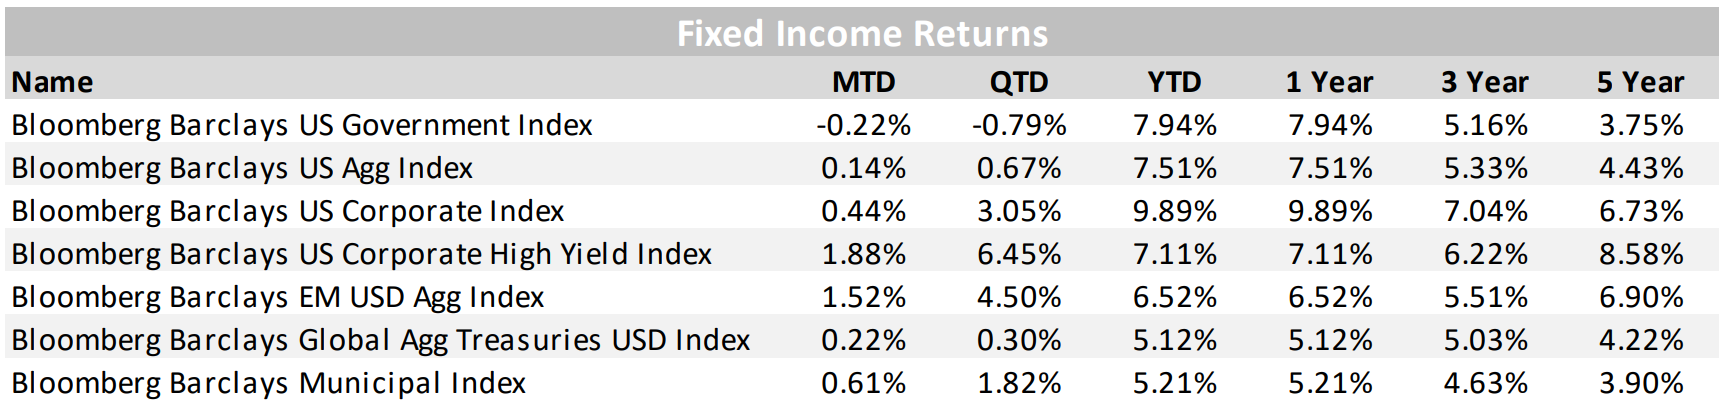 Fixed Income Returns